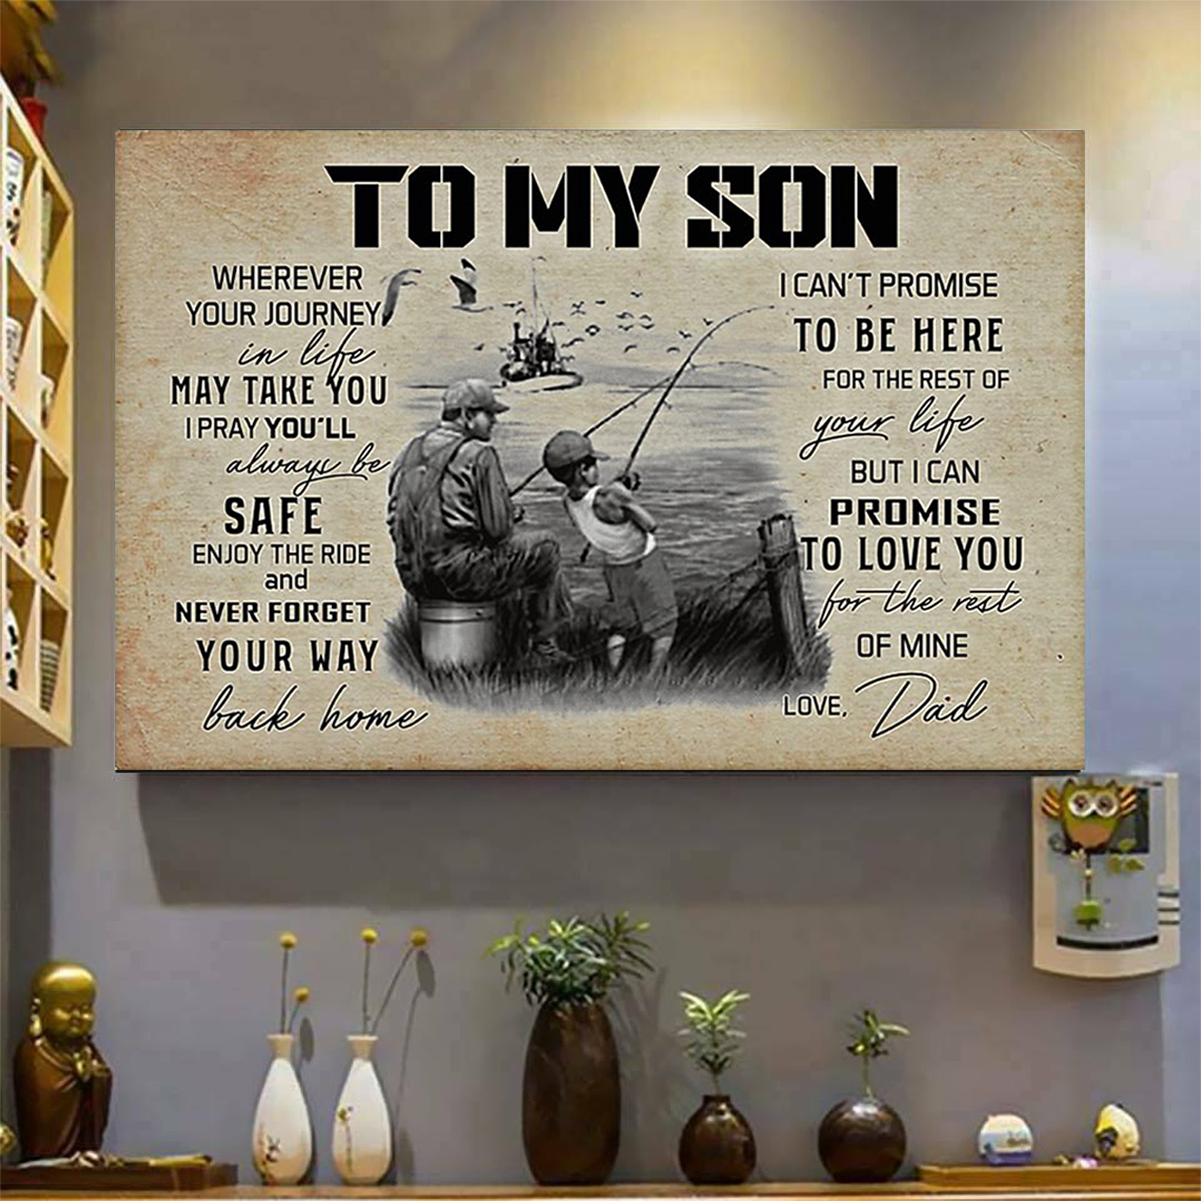 Fishing to my son love dad poster A3